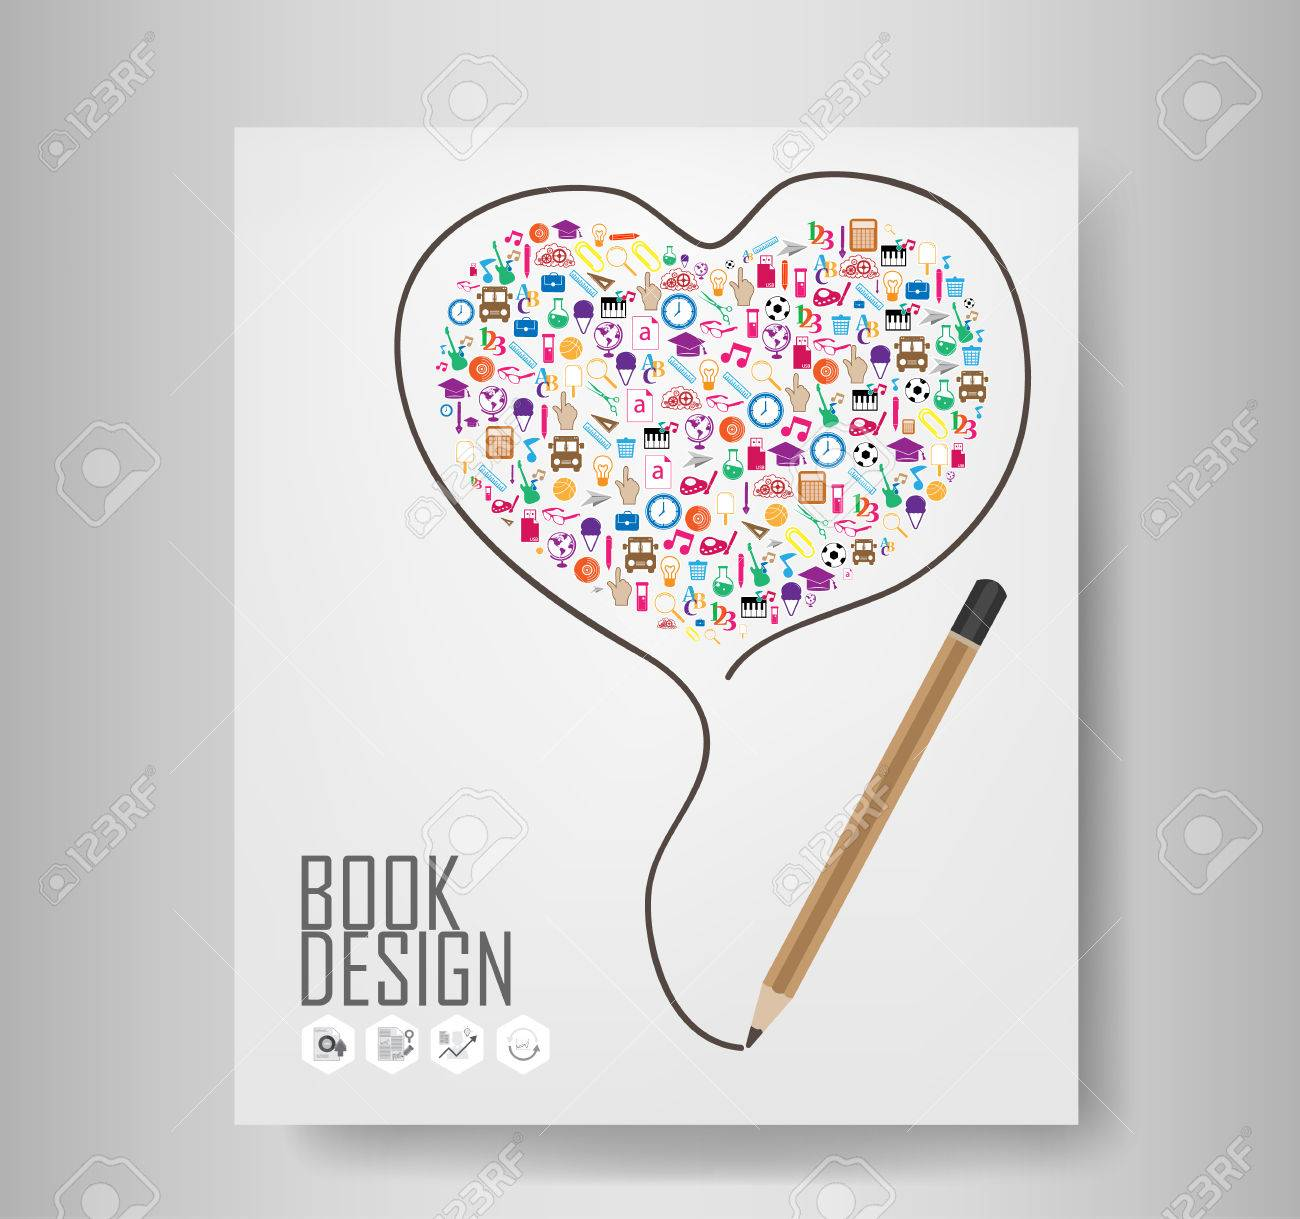 Pencil draw heart template design with heart back to school pencil draw heart template design with heart back to school seamless book illustration stock vector ccuart Image collections